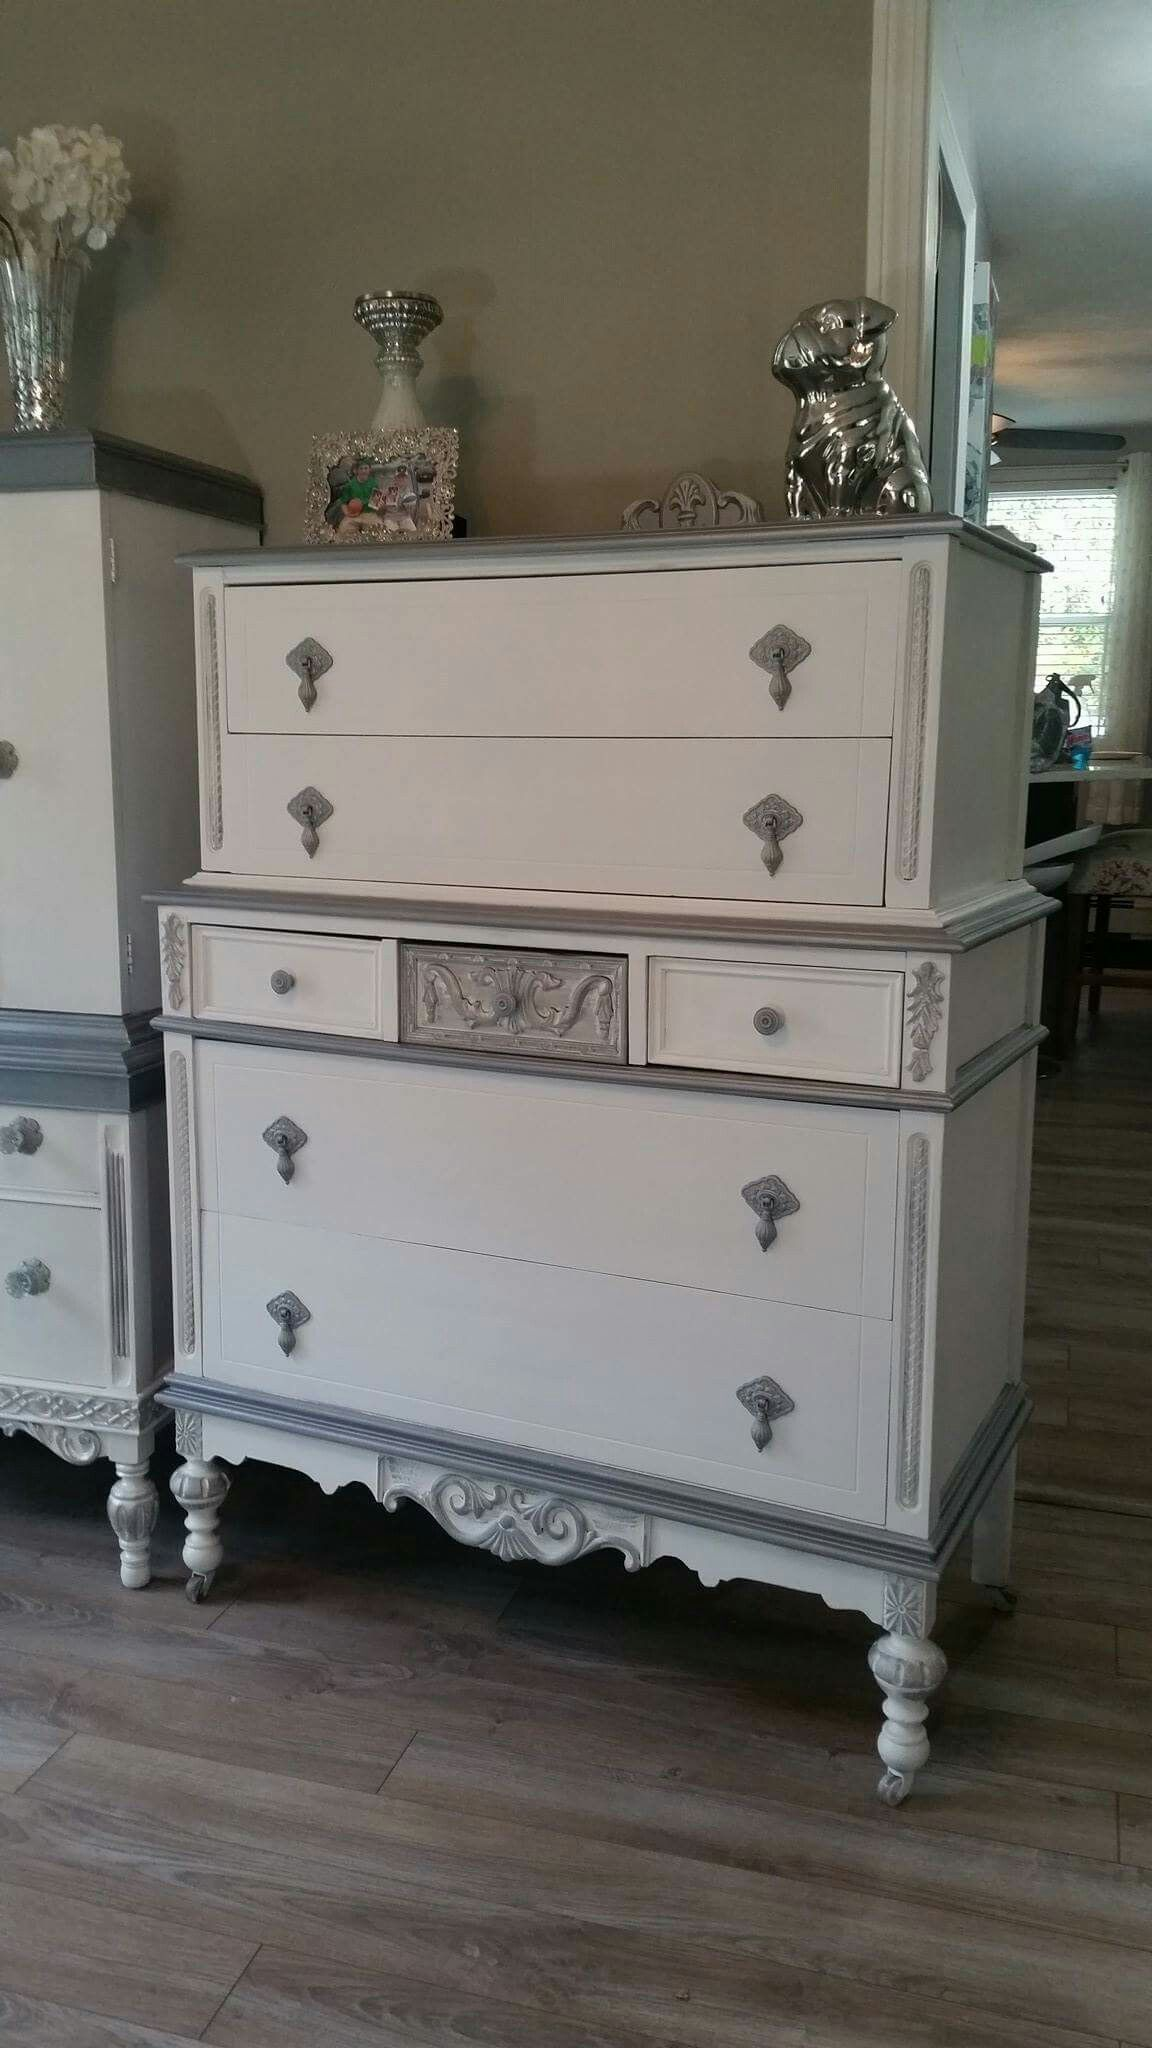 Vintage Tall Chest Dresser With Original Casters Repurposed Upcycled And Refinished In White Chalk Shabby Furniture Shabby Chic Dresser Shabby Chic Furniture [ 2048 x 1152 Pixel ]